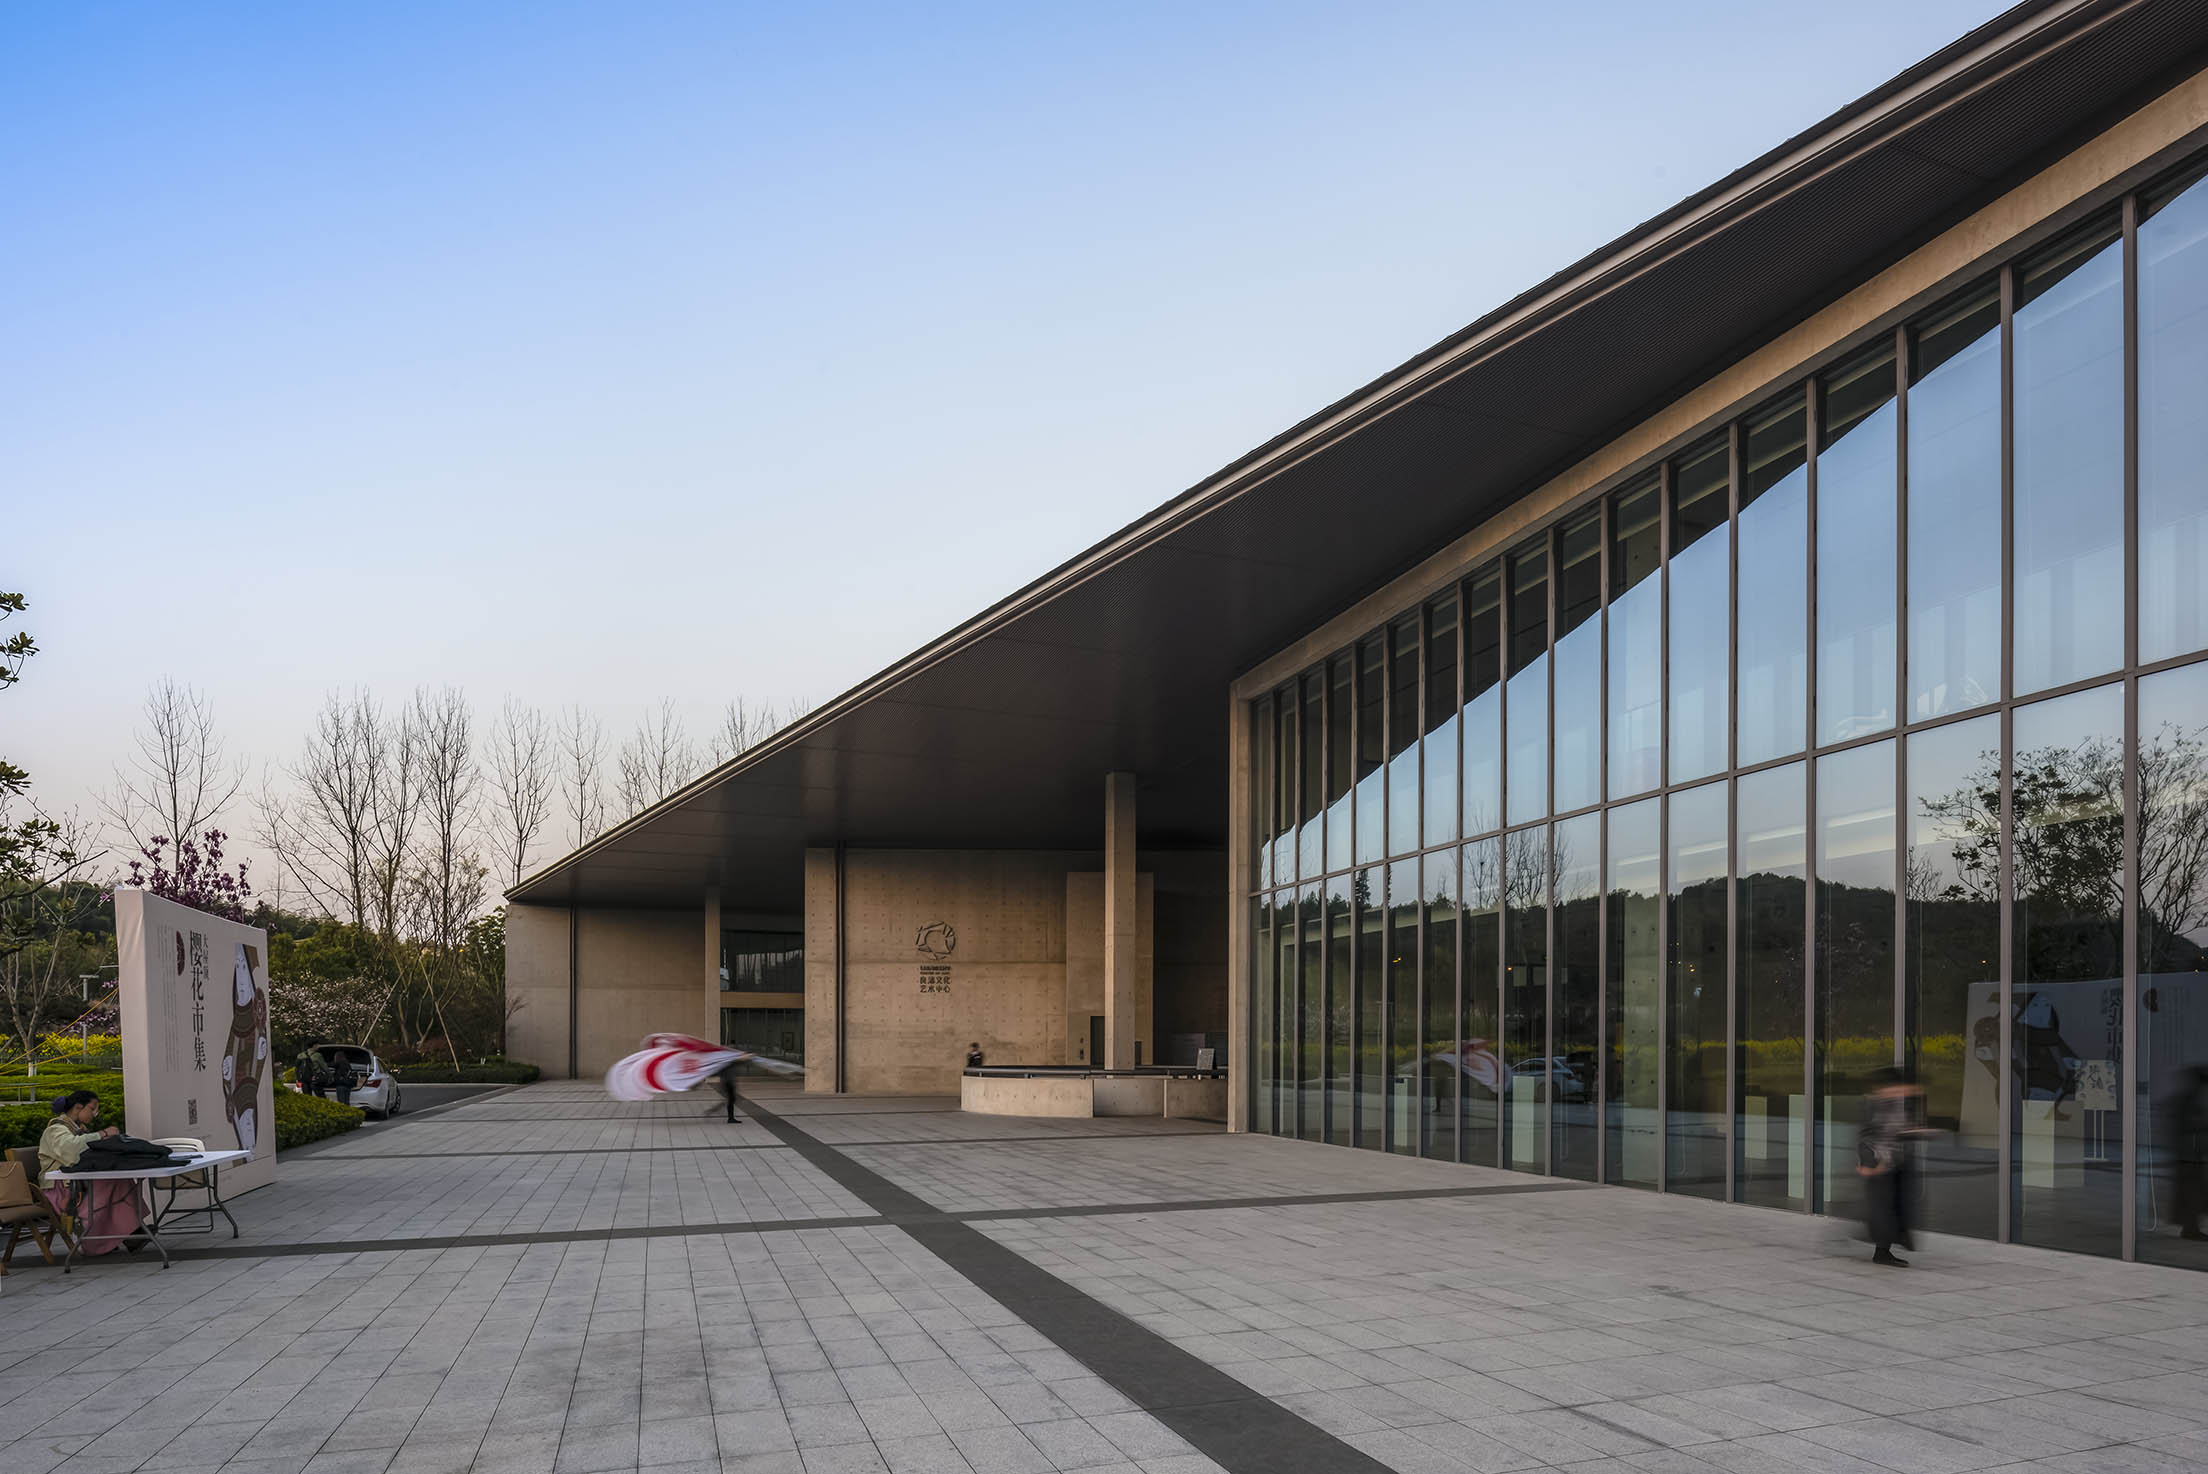 良渚文化艺术中心 | 安藤忠雄 <br/>Liangzhu Culture and Arts Center | Tadao Ando